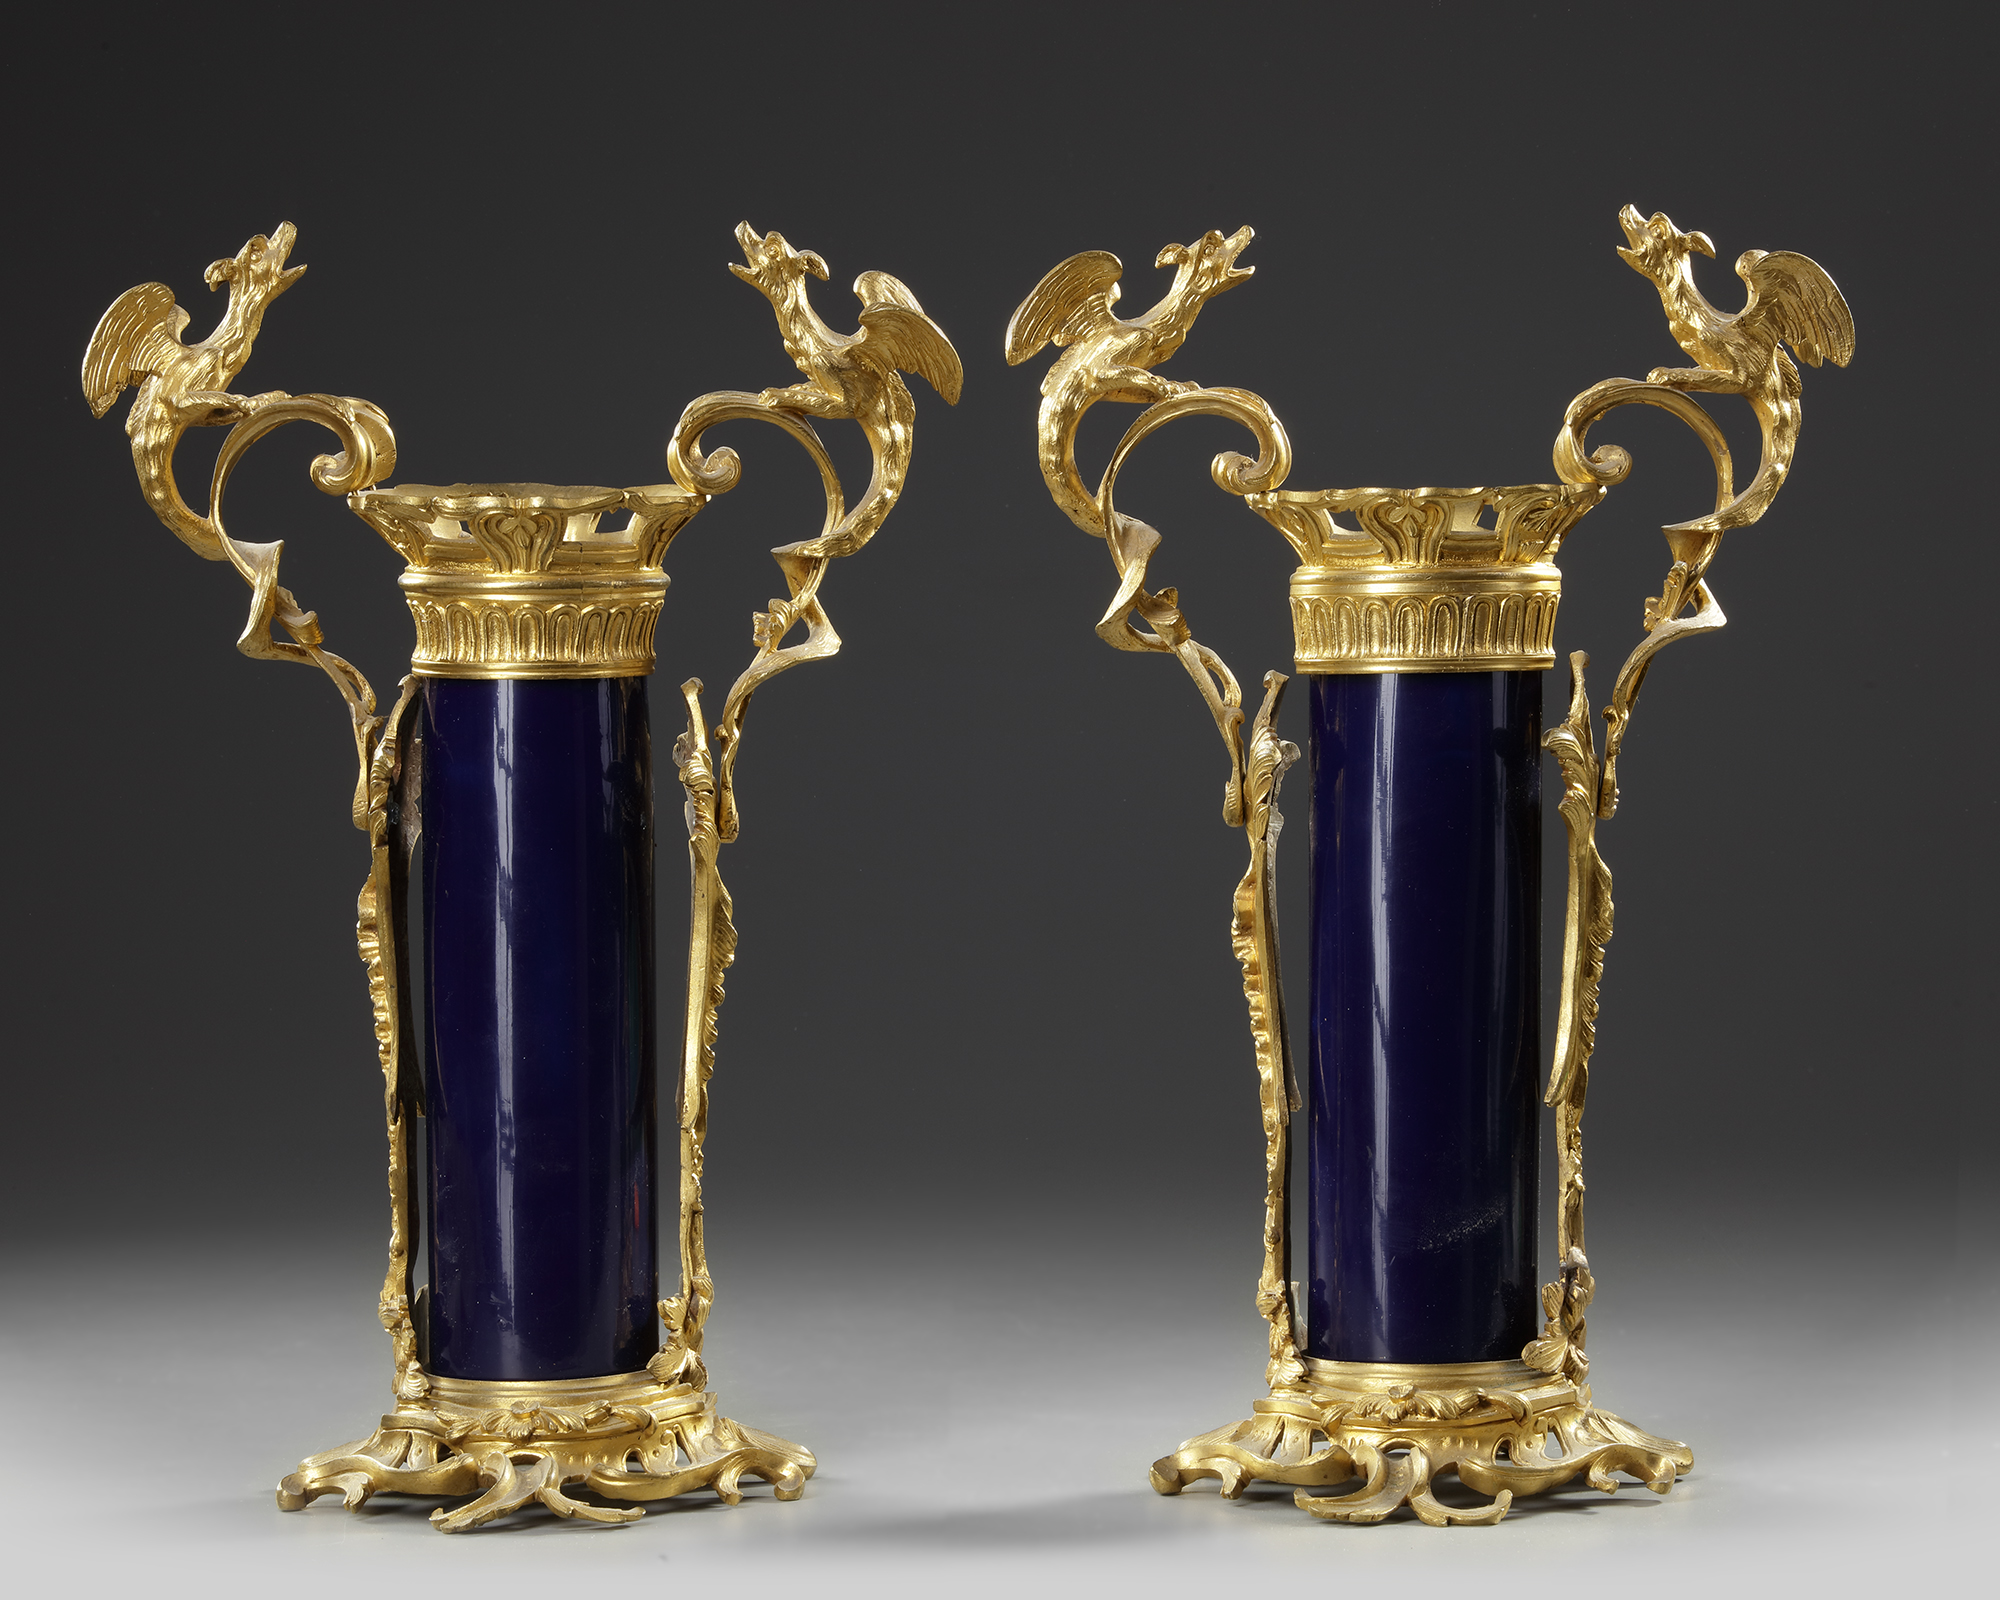 A PAIR OF FRENCH BLUE PORCELAIN VASES, 19TH CENTURY